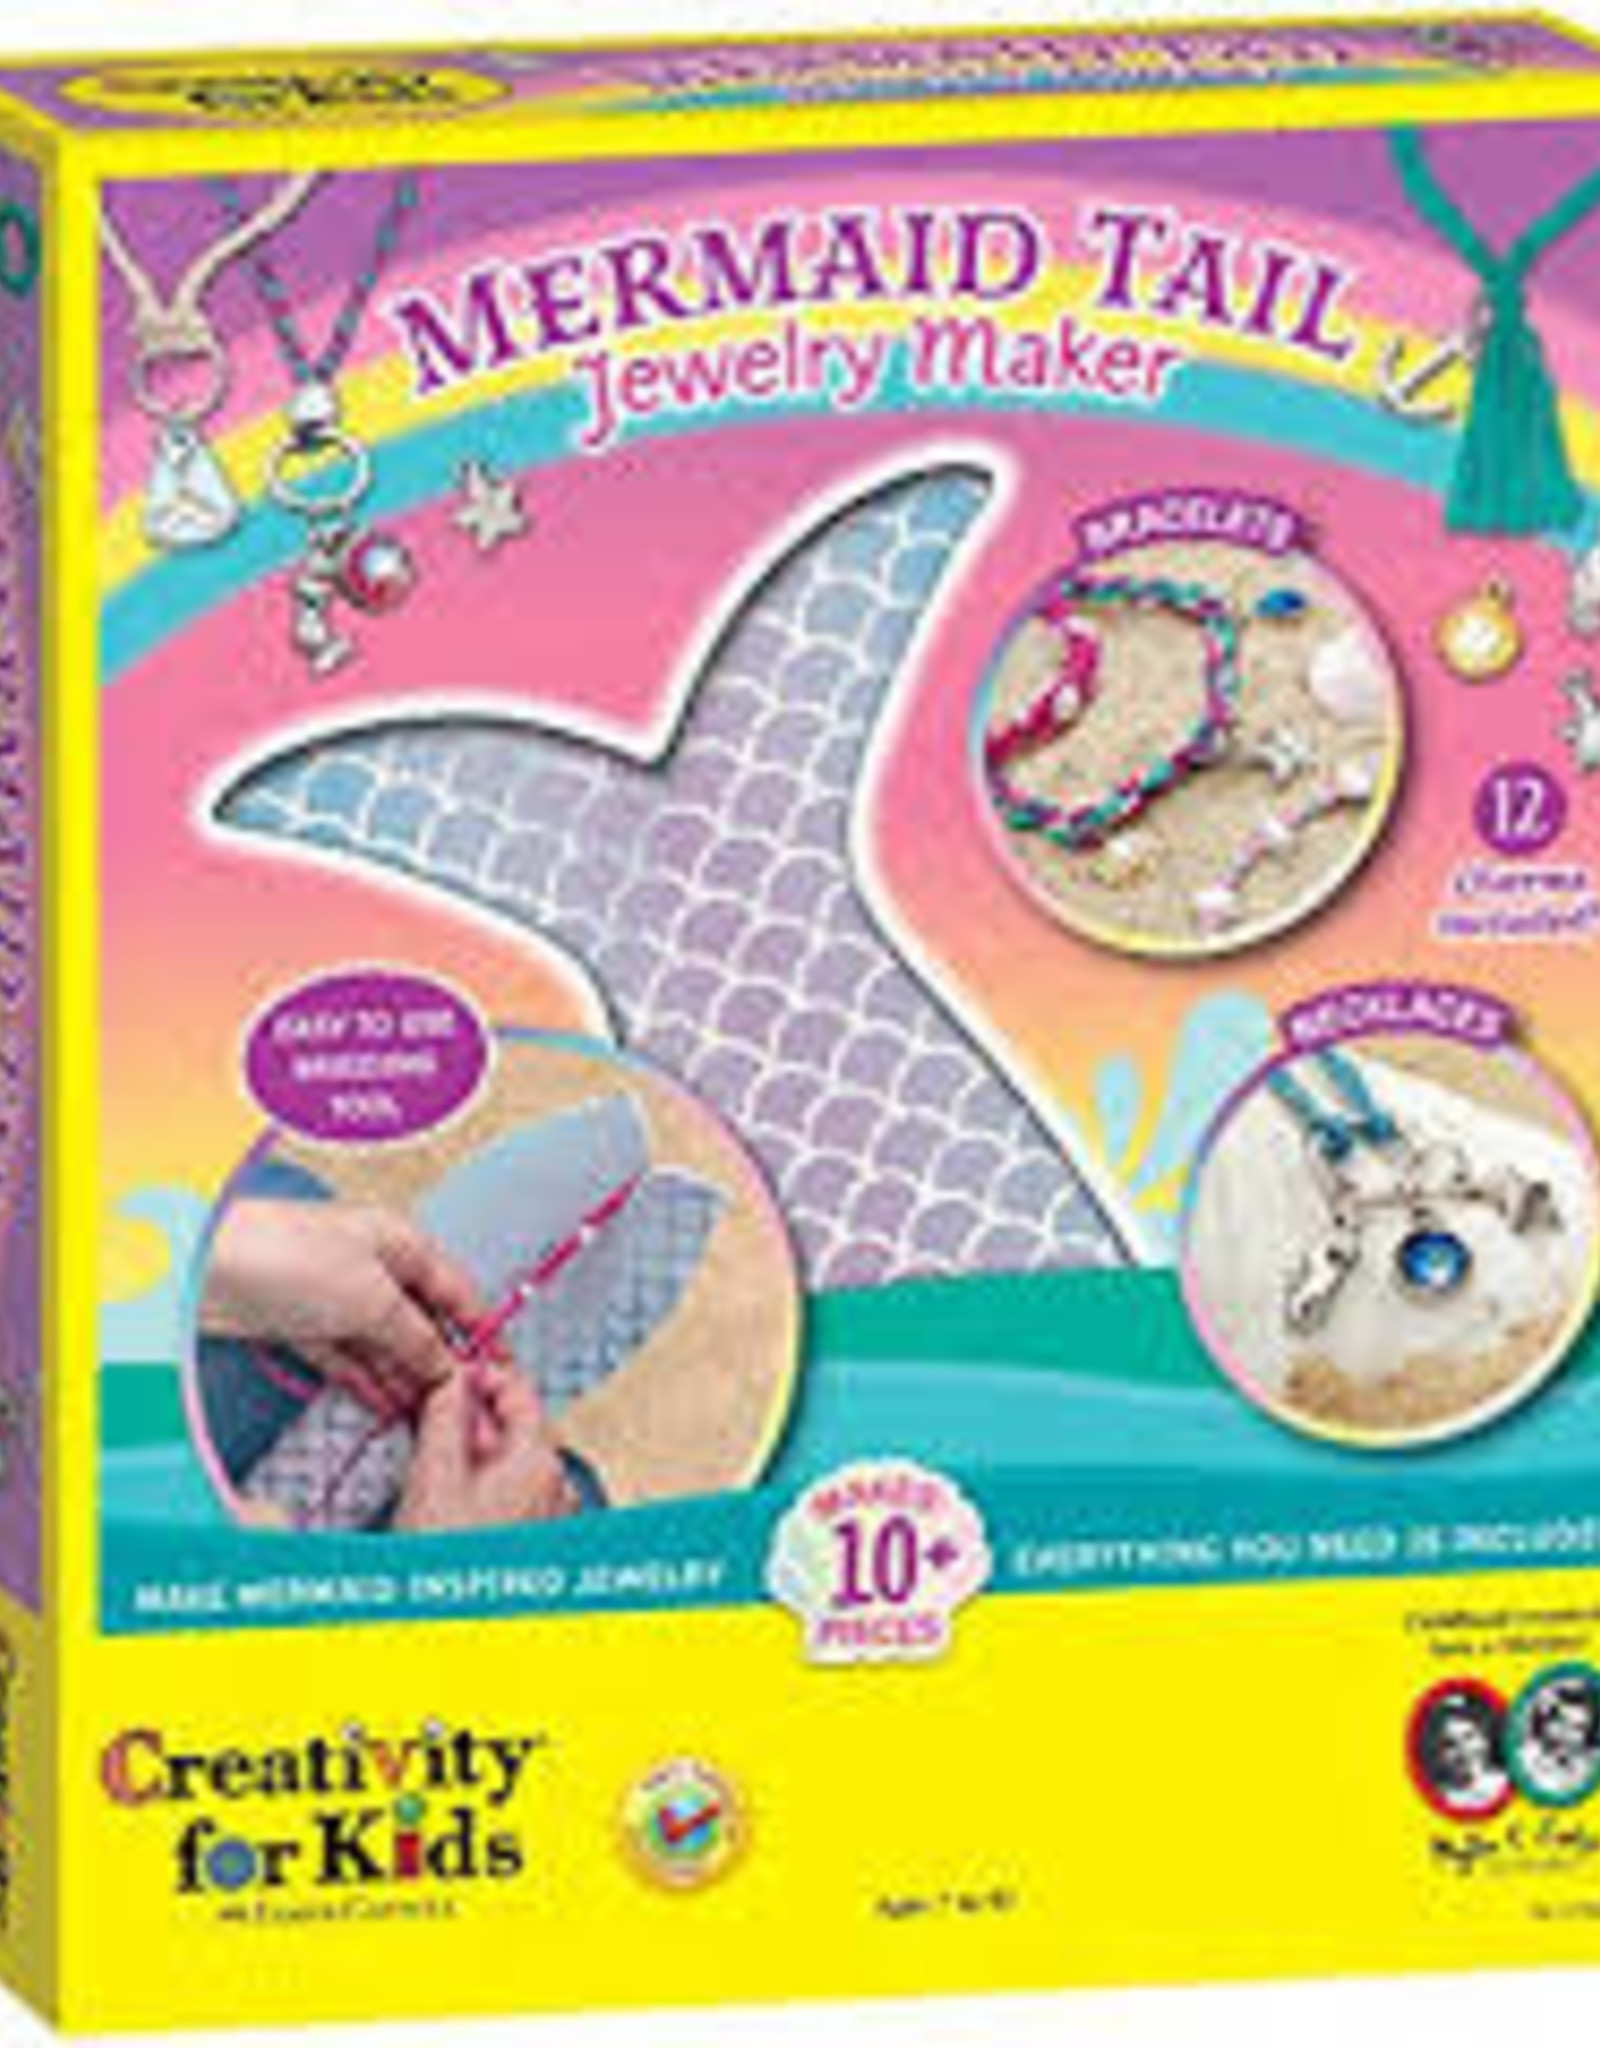 Creativity For Kids Mermaid Tail Jewelry Maker